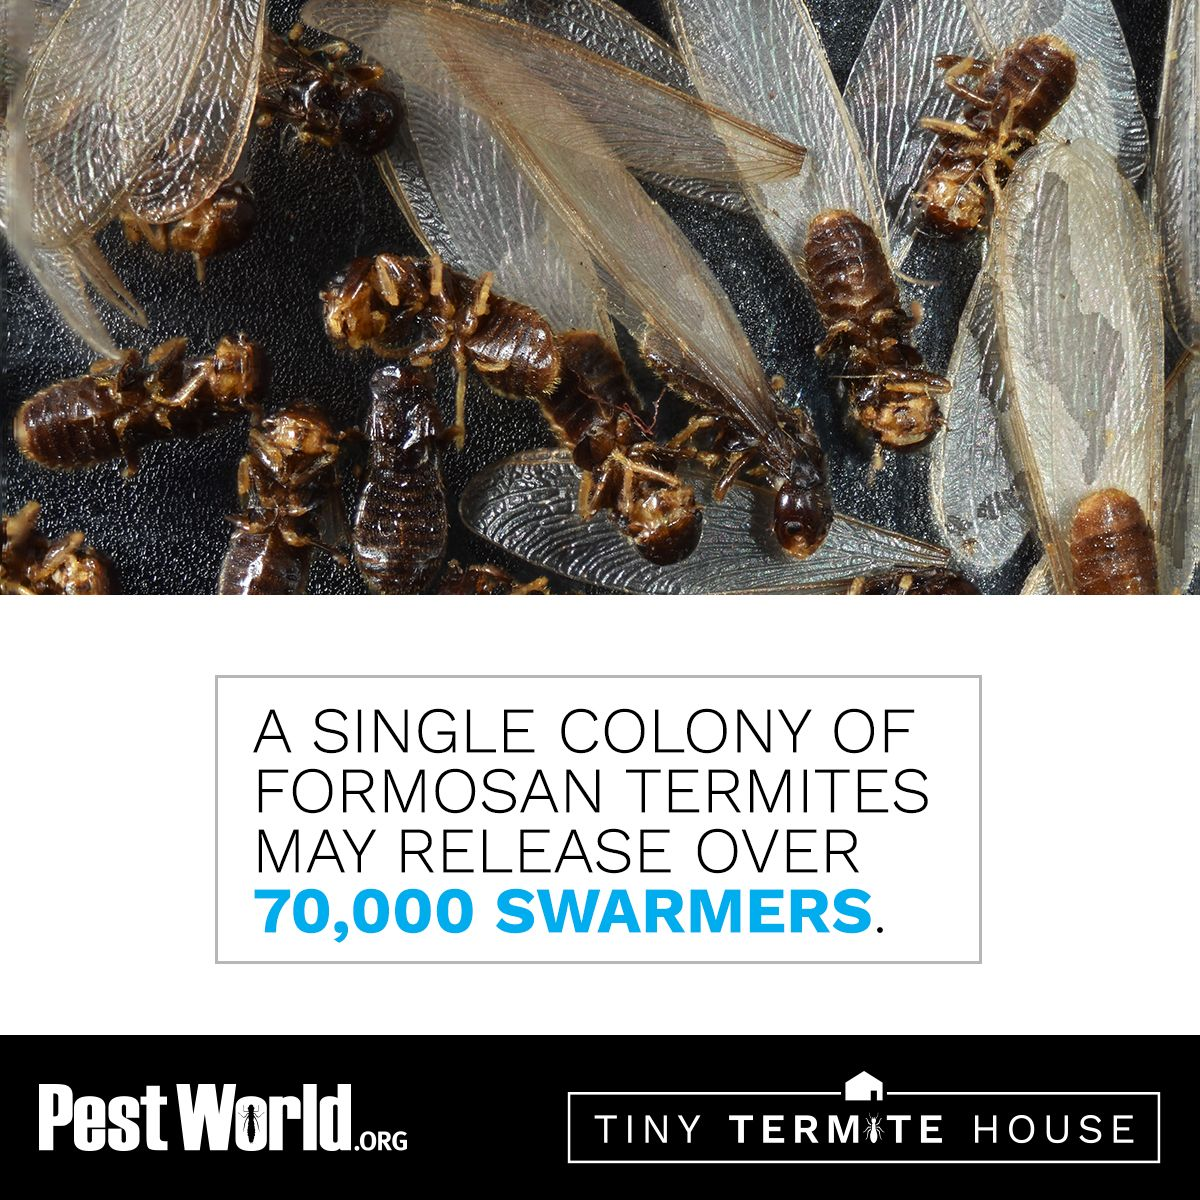 You're not going to want termite swarmers around your home